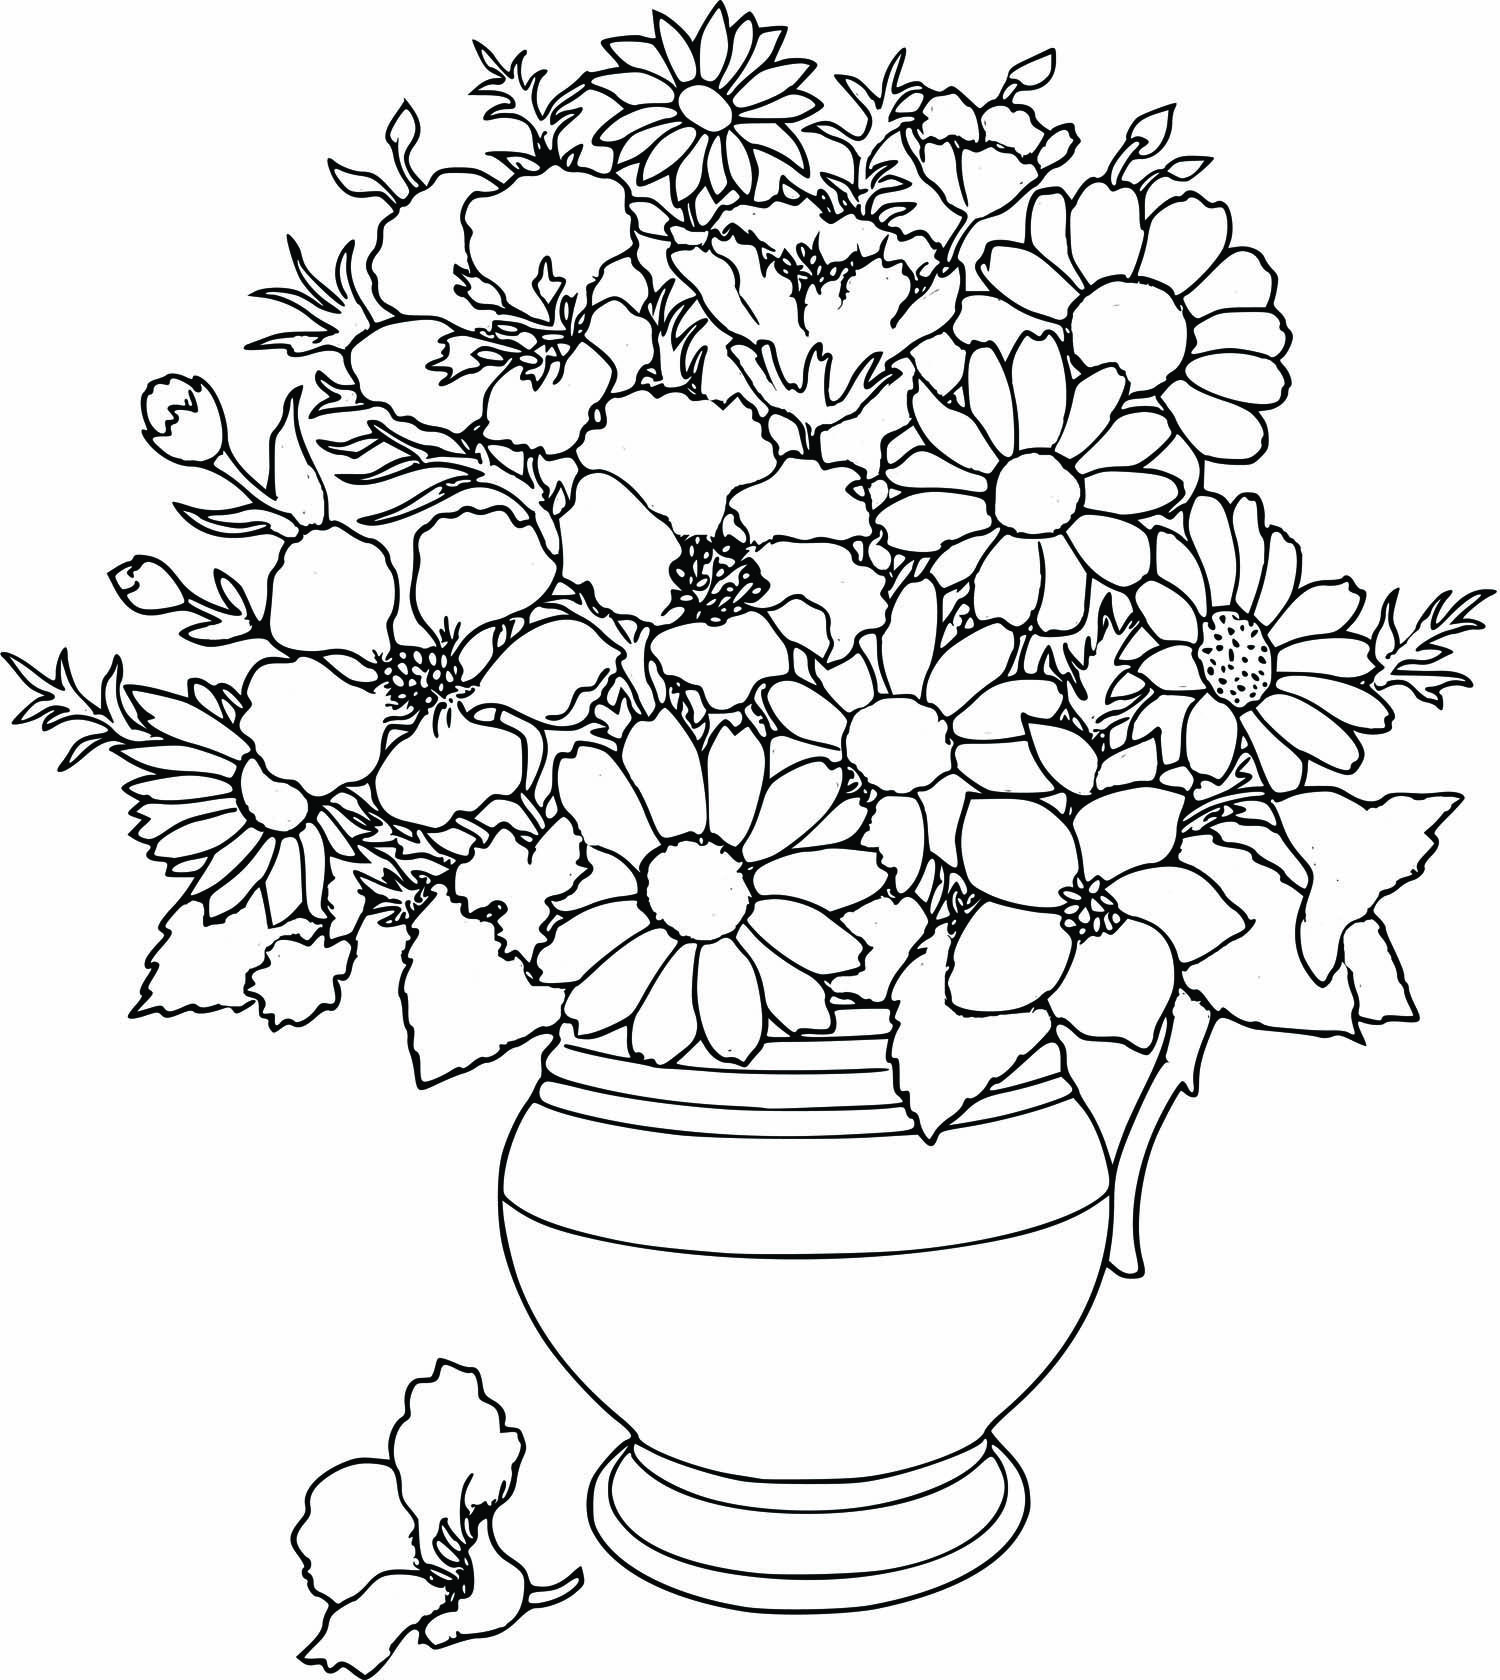 Flower coloring in pages - Free Beautifull Flower Coloring Pages